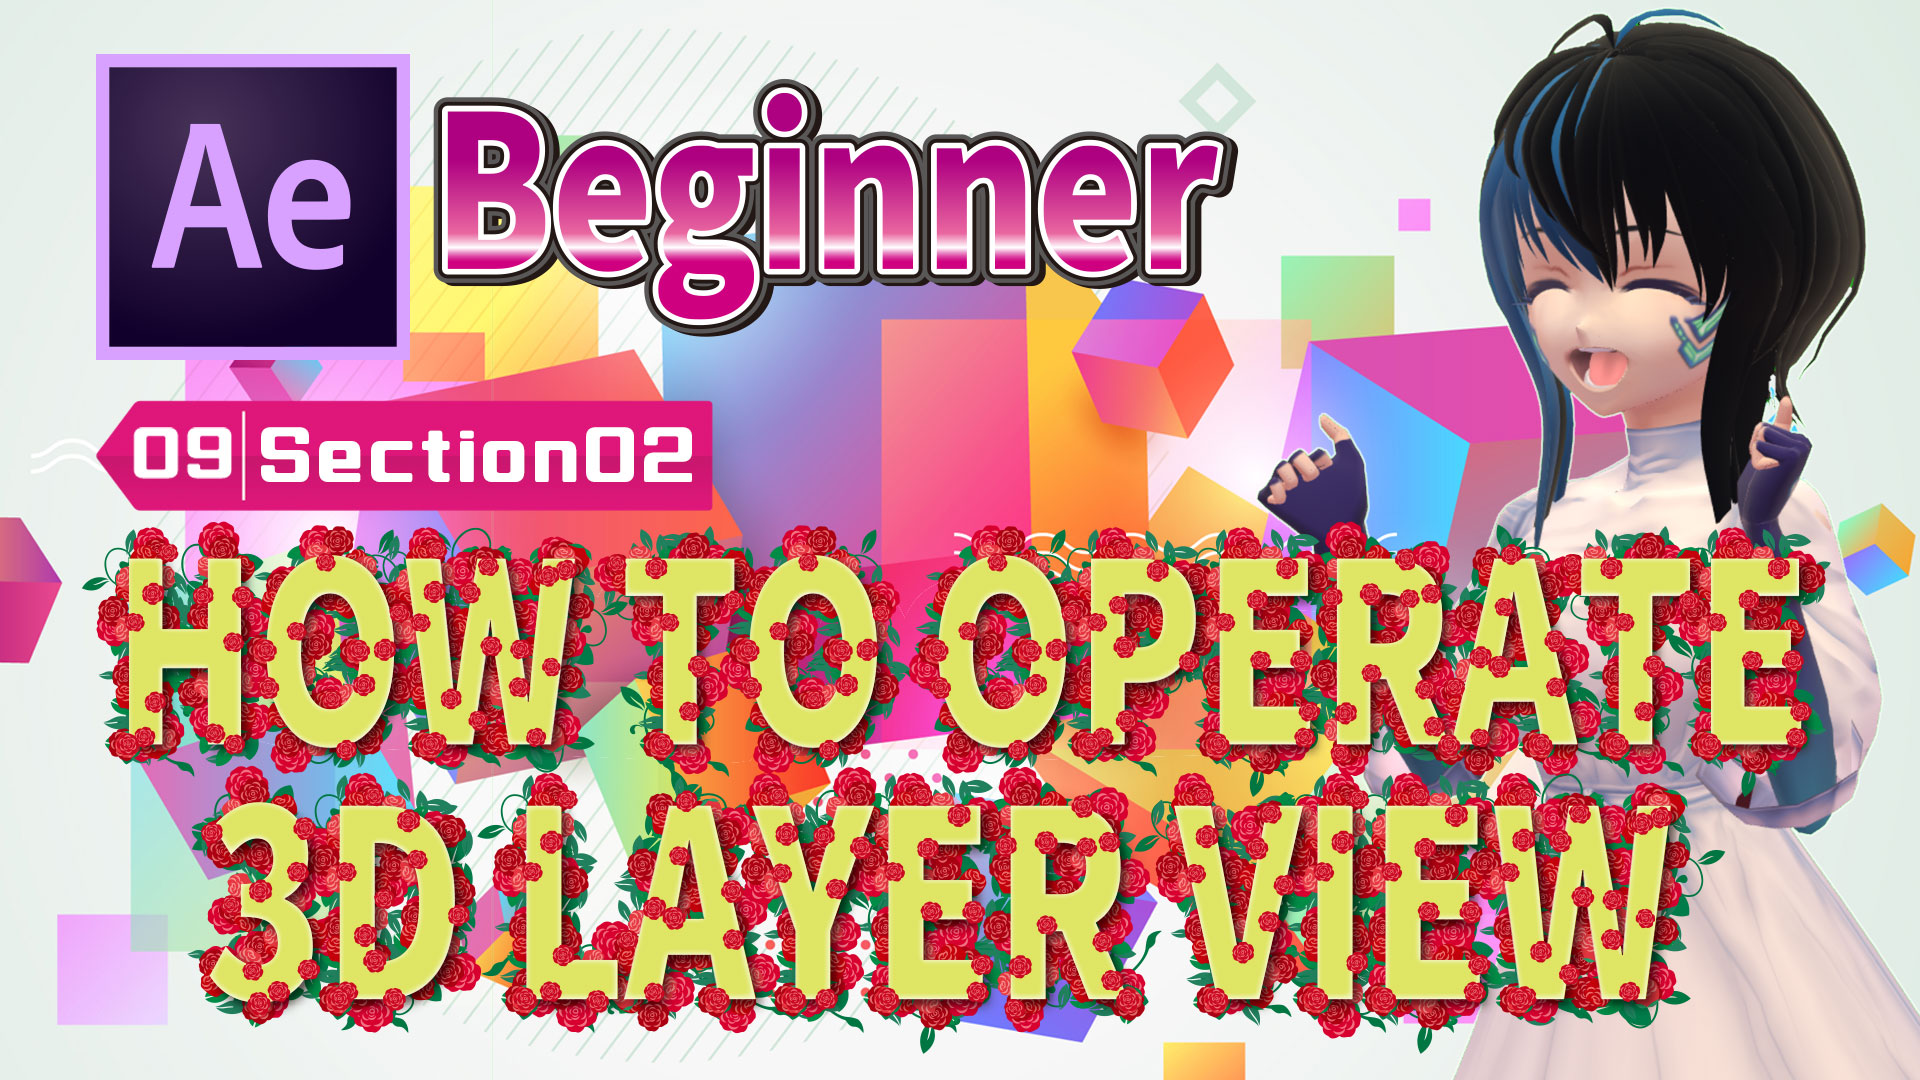 HOW TO OPERATE 3D LAYER VIEW